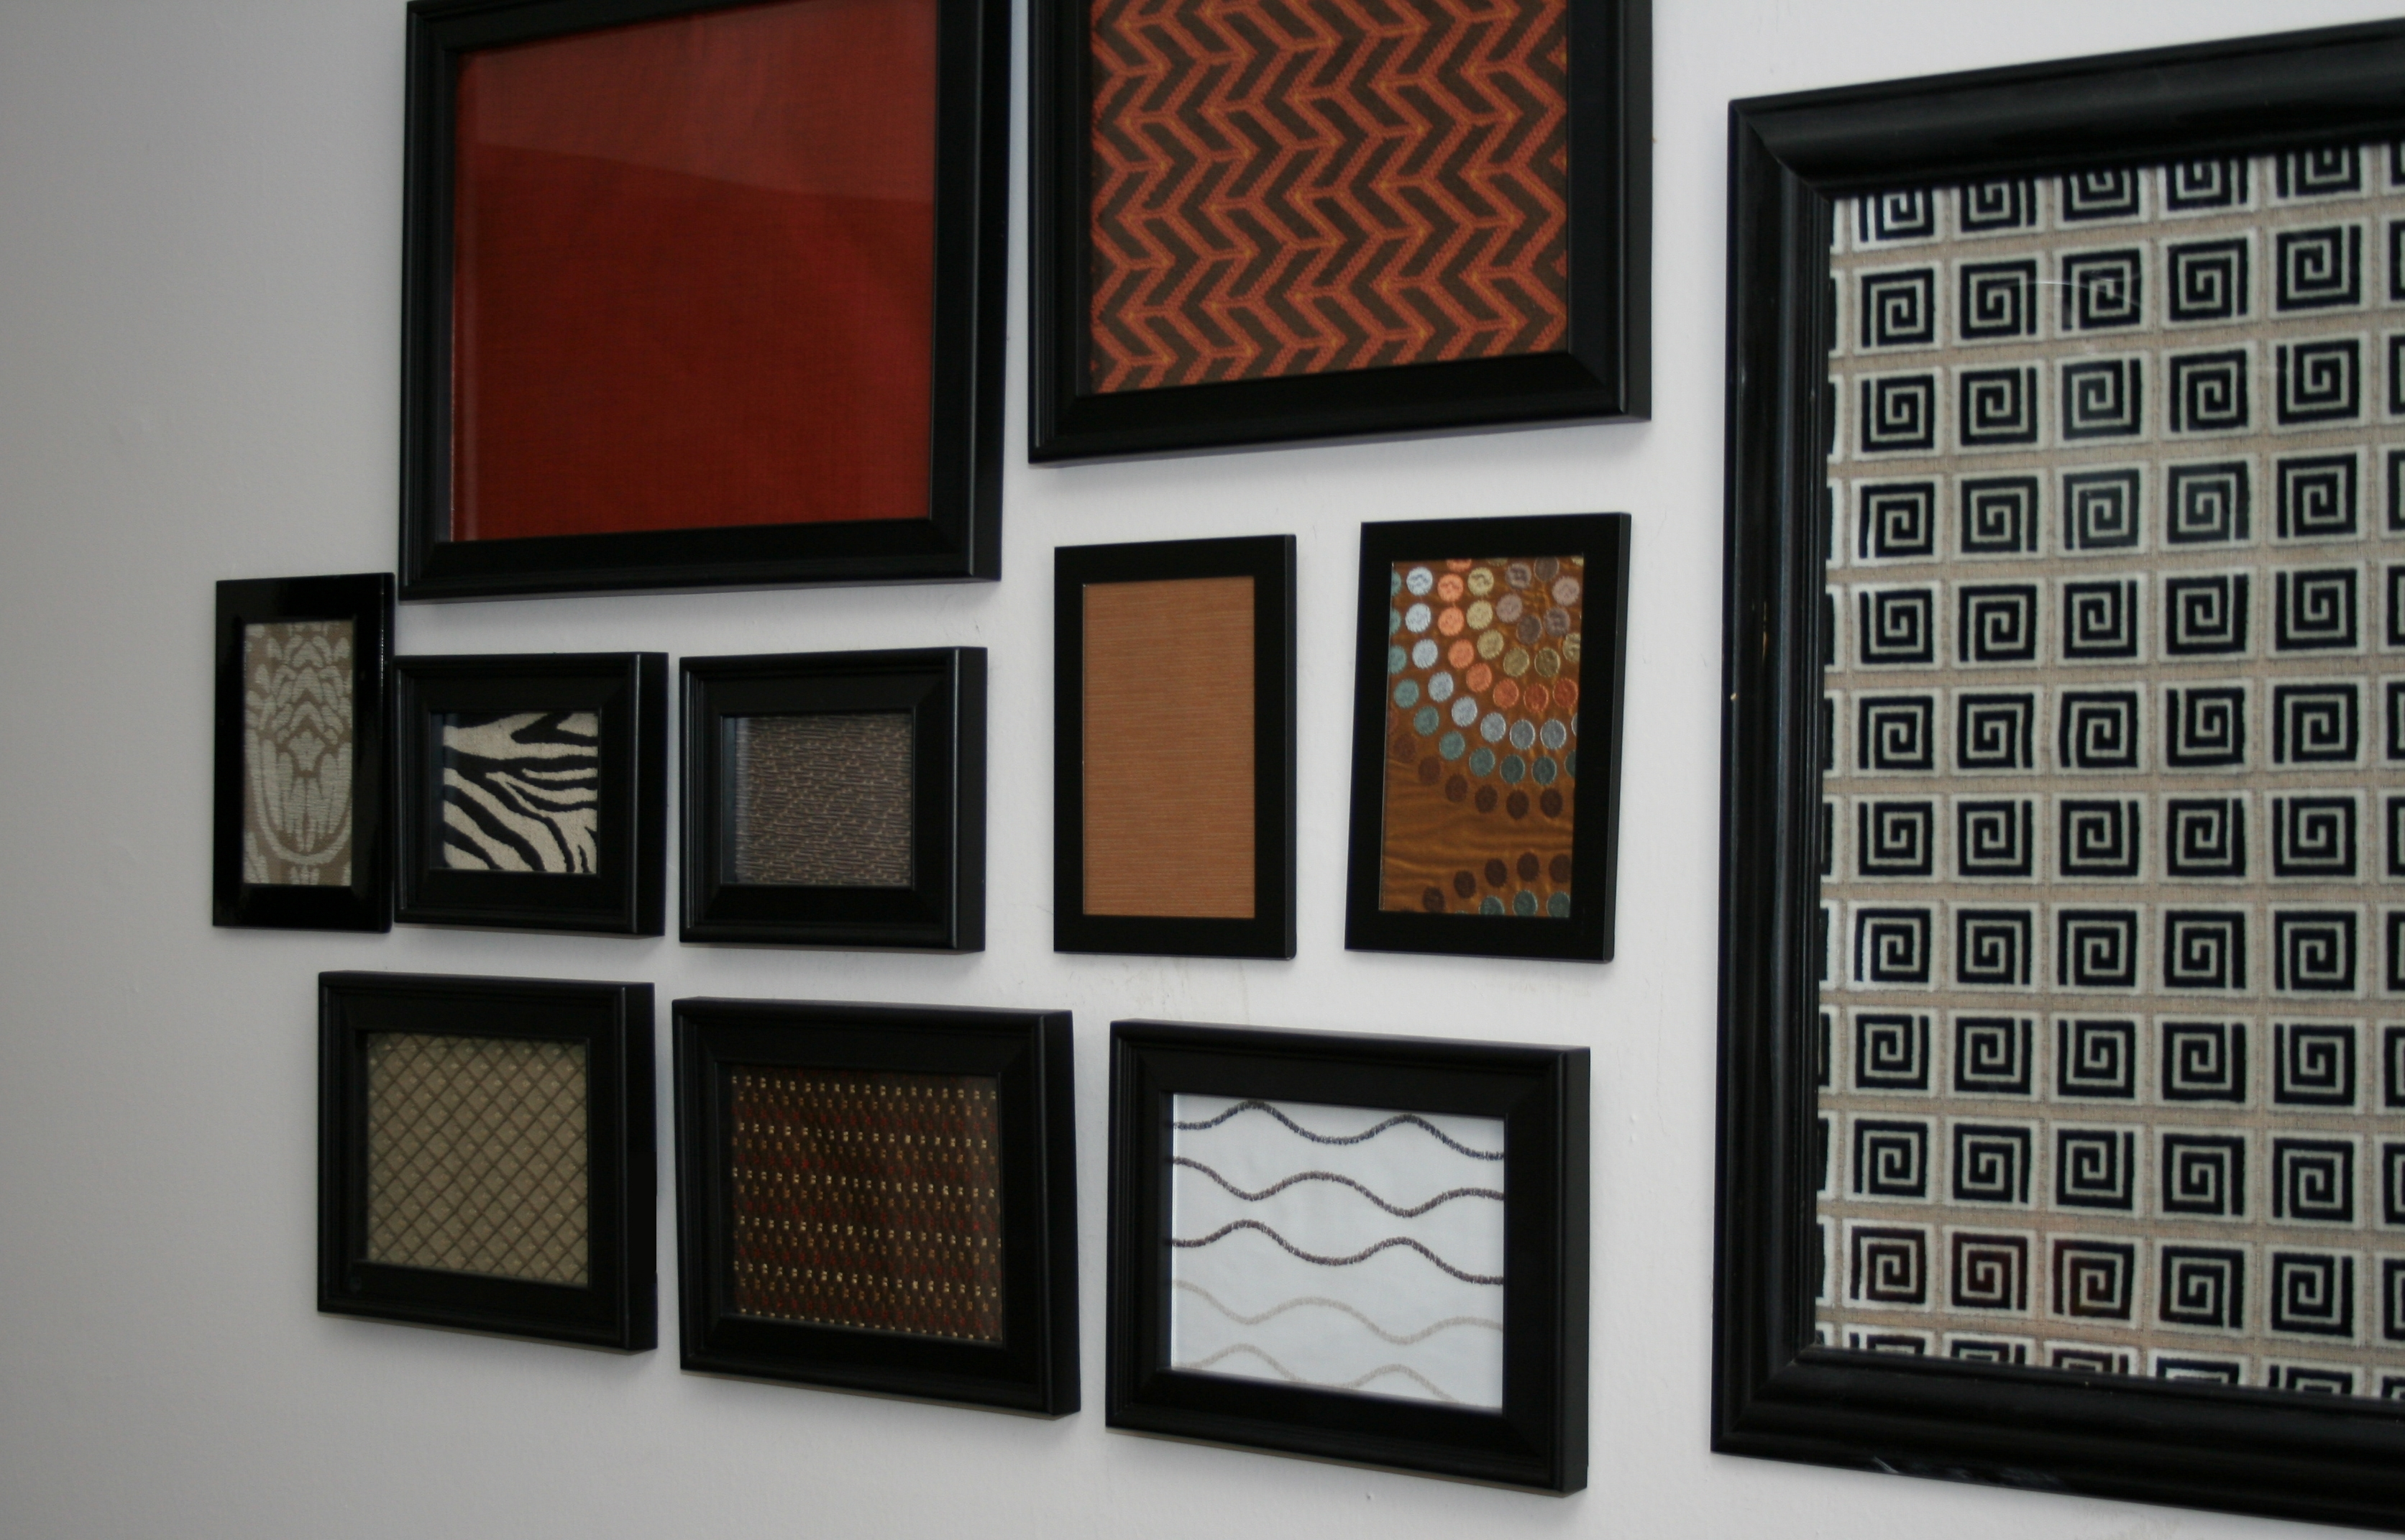 Framed Fabric Wall Art | With Regard To Most Current Framed Textile Wall Art (View 6 of 15)